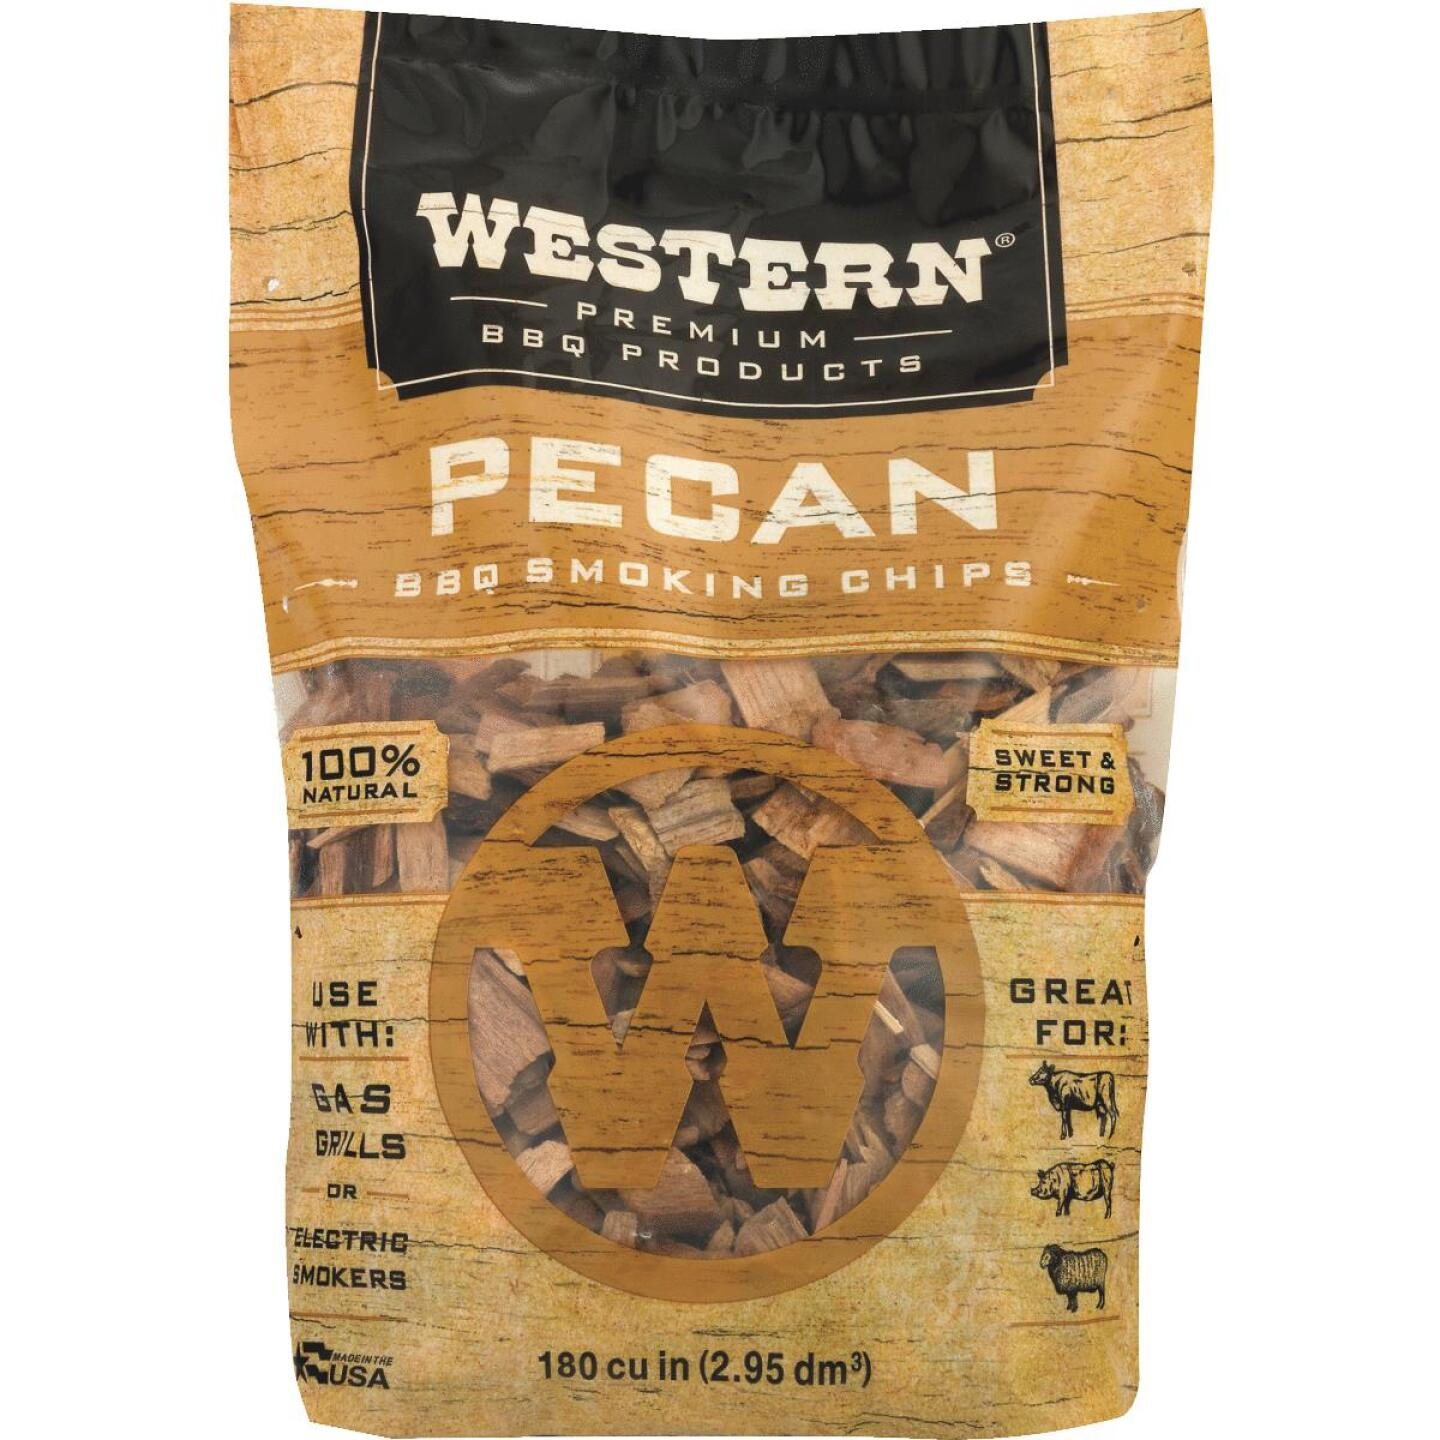 Western 2 Lb. Pecan Wood Smoking Chips Image 3